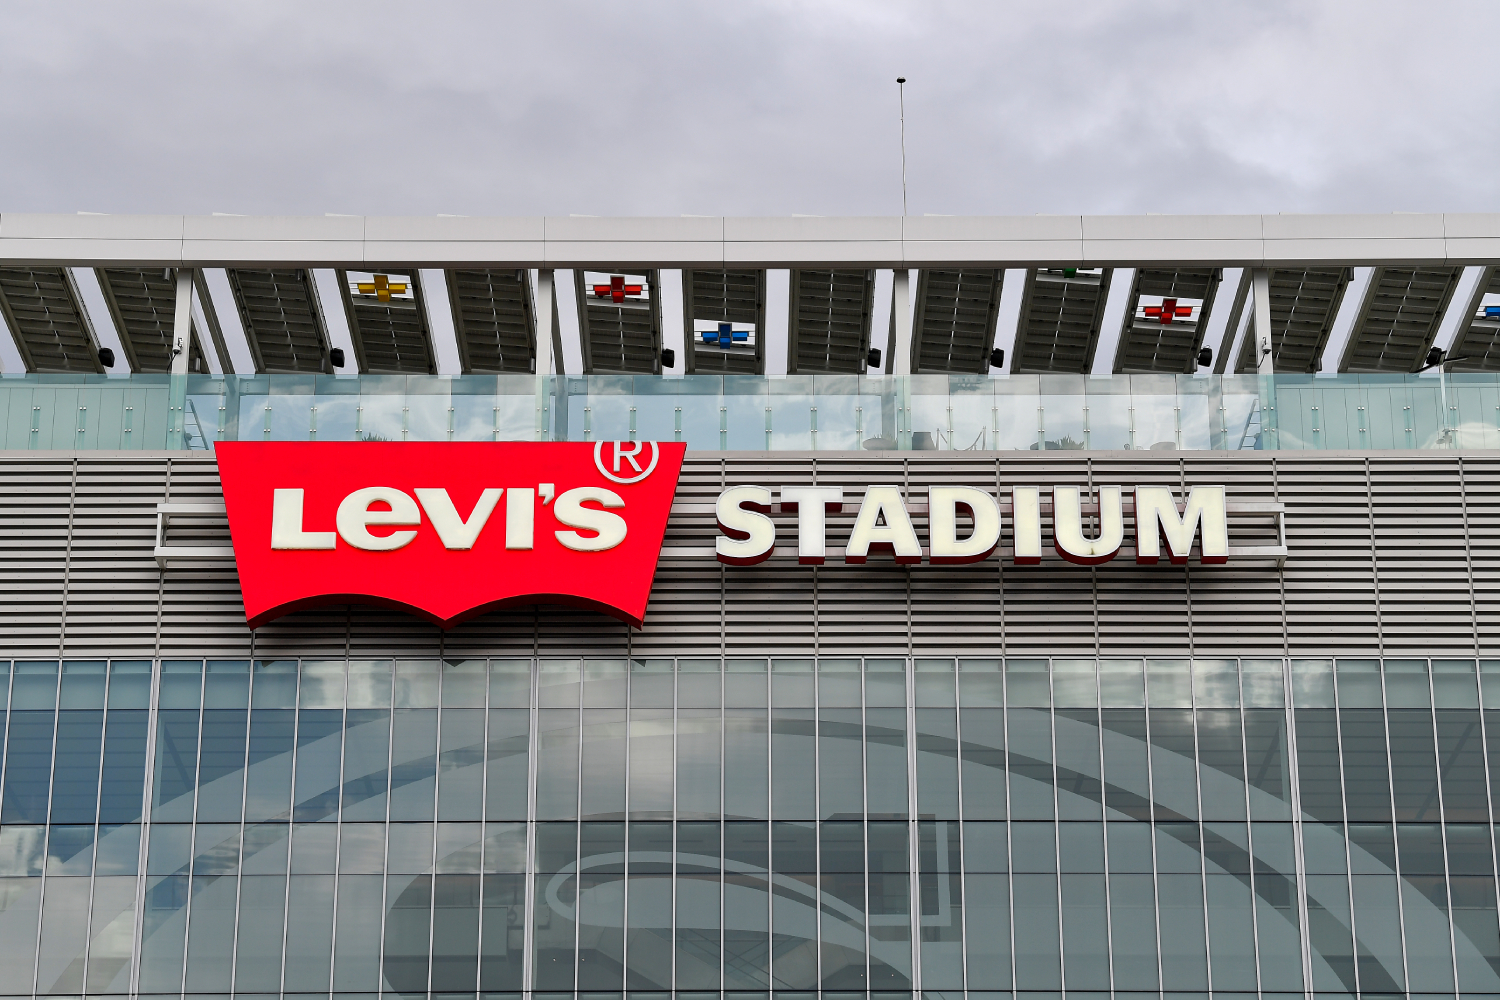 You can have a cardboard cutout at Levi's Stadium this year for $149.